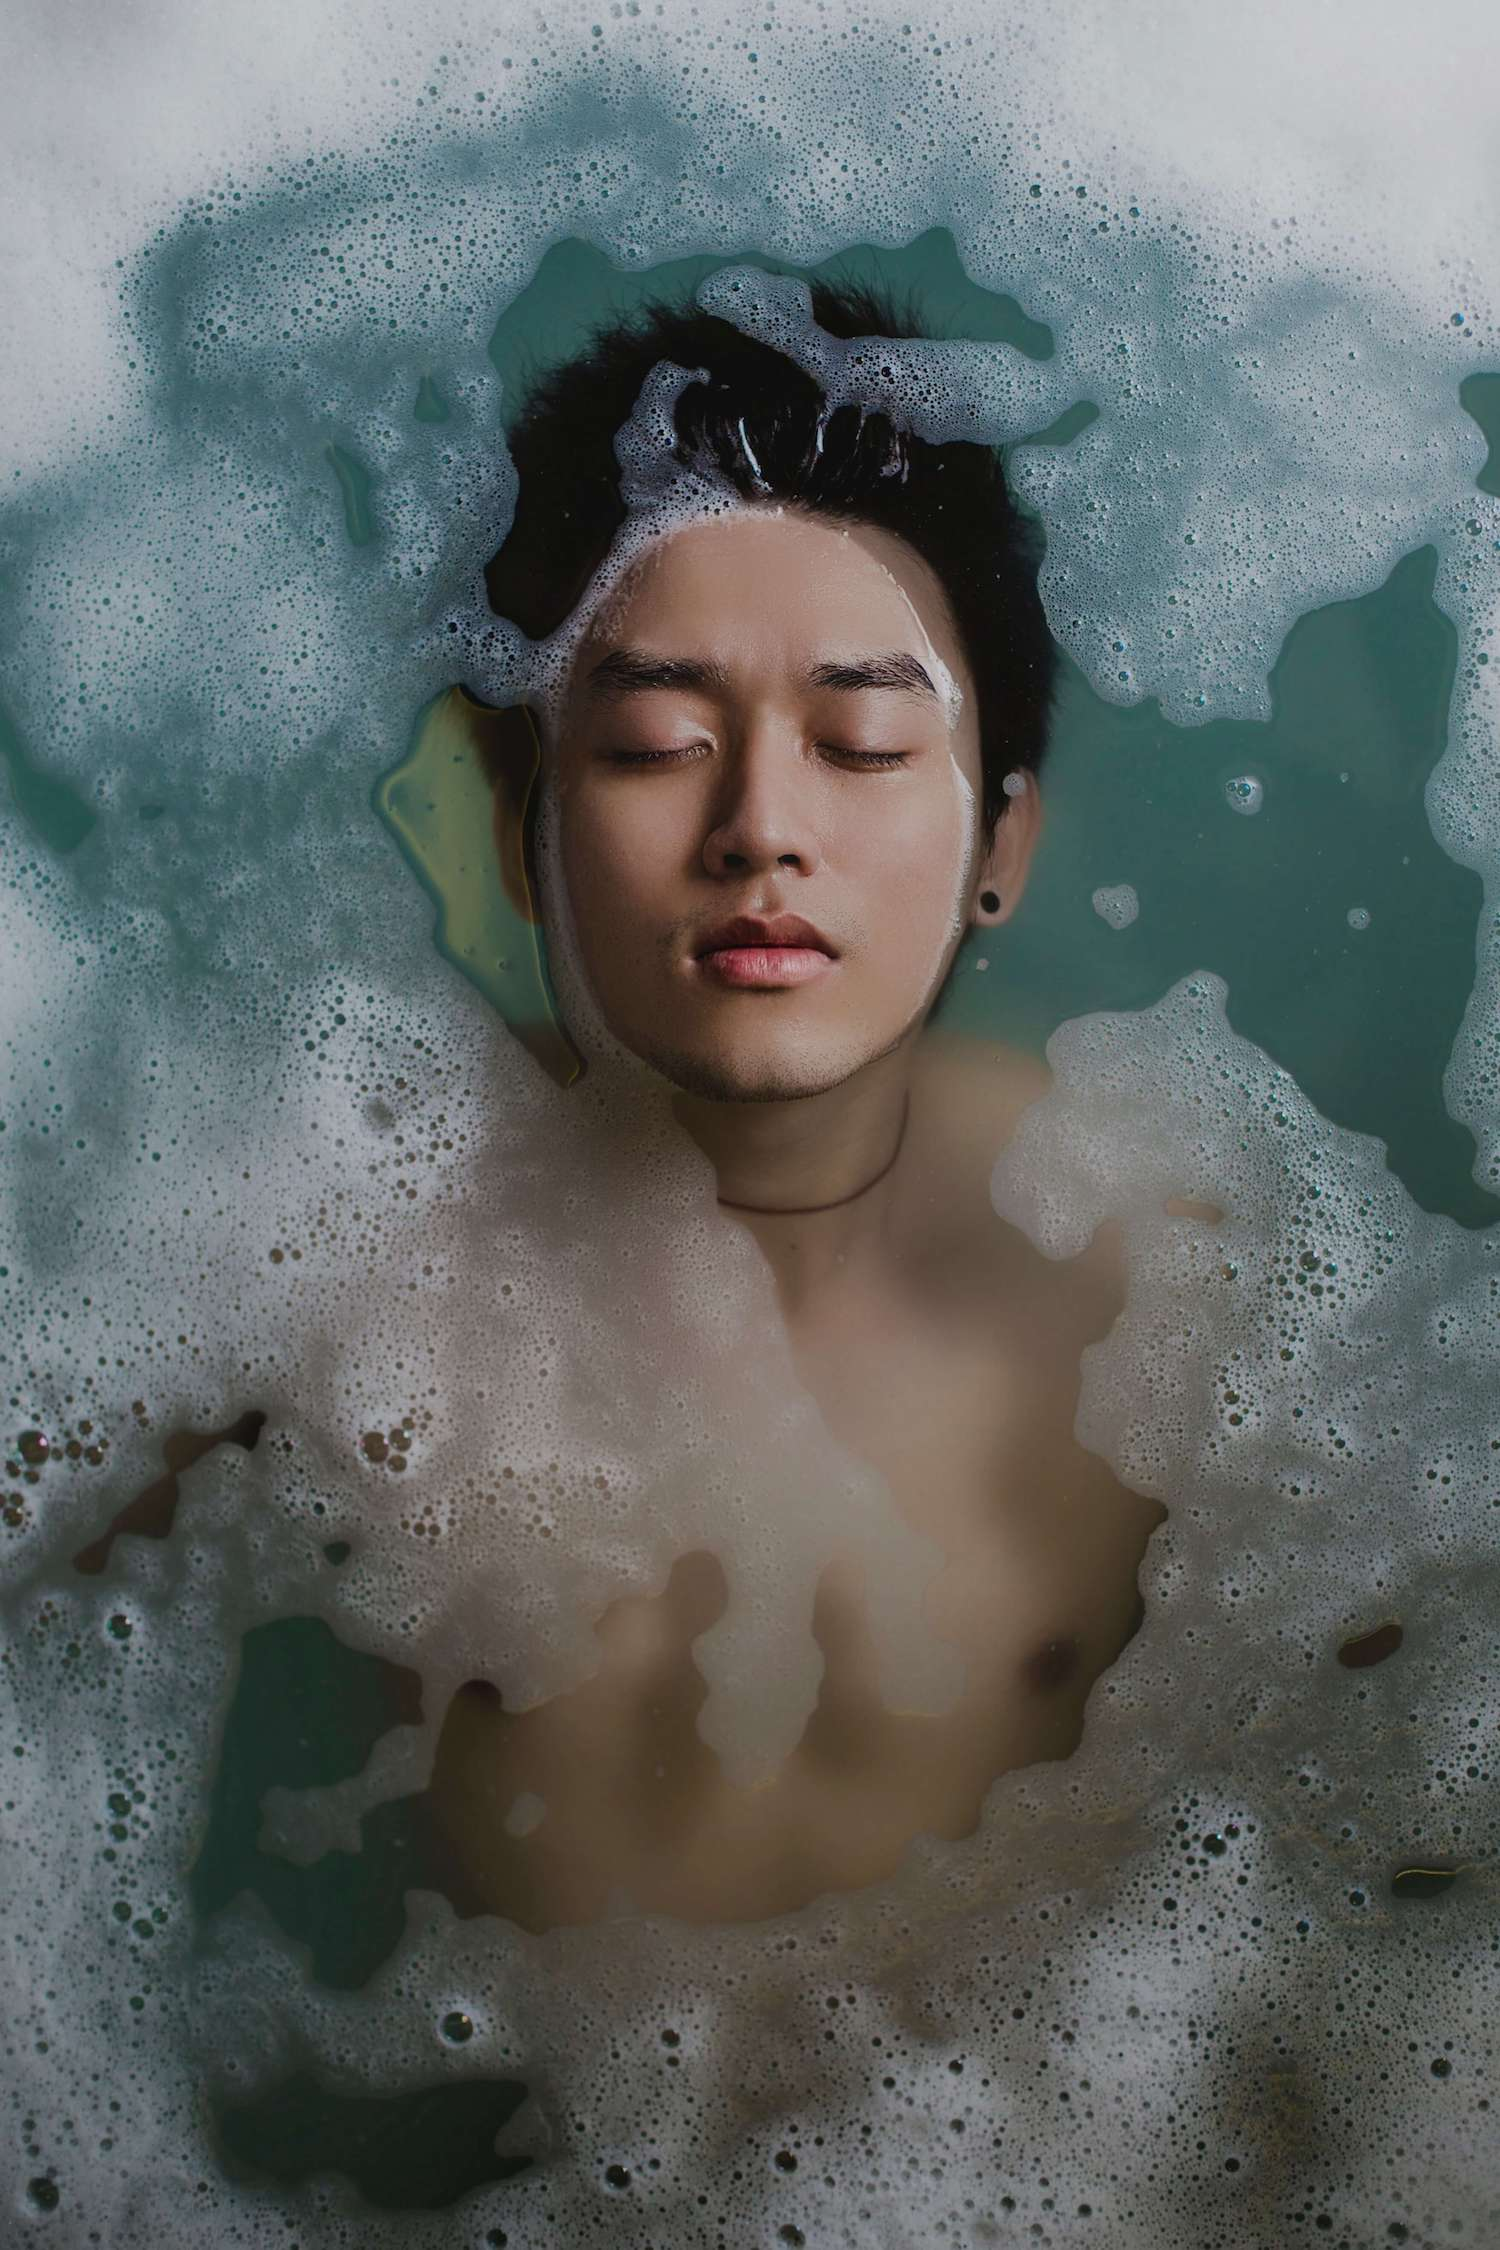 A young man in a foaming bath.